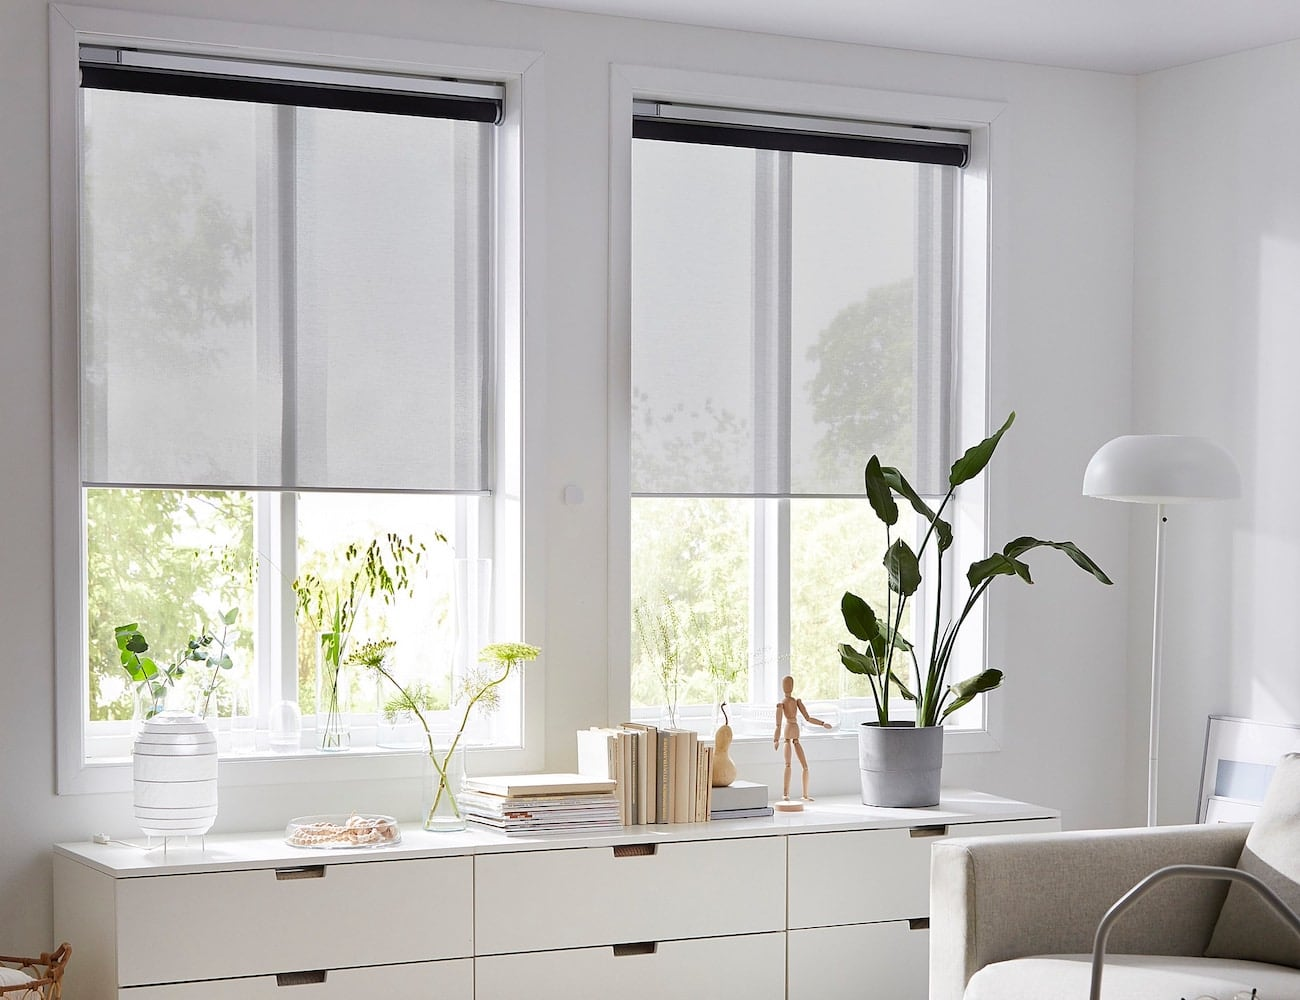 IKEA FYRTUR Smart Window Blinds black out the outside world